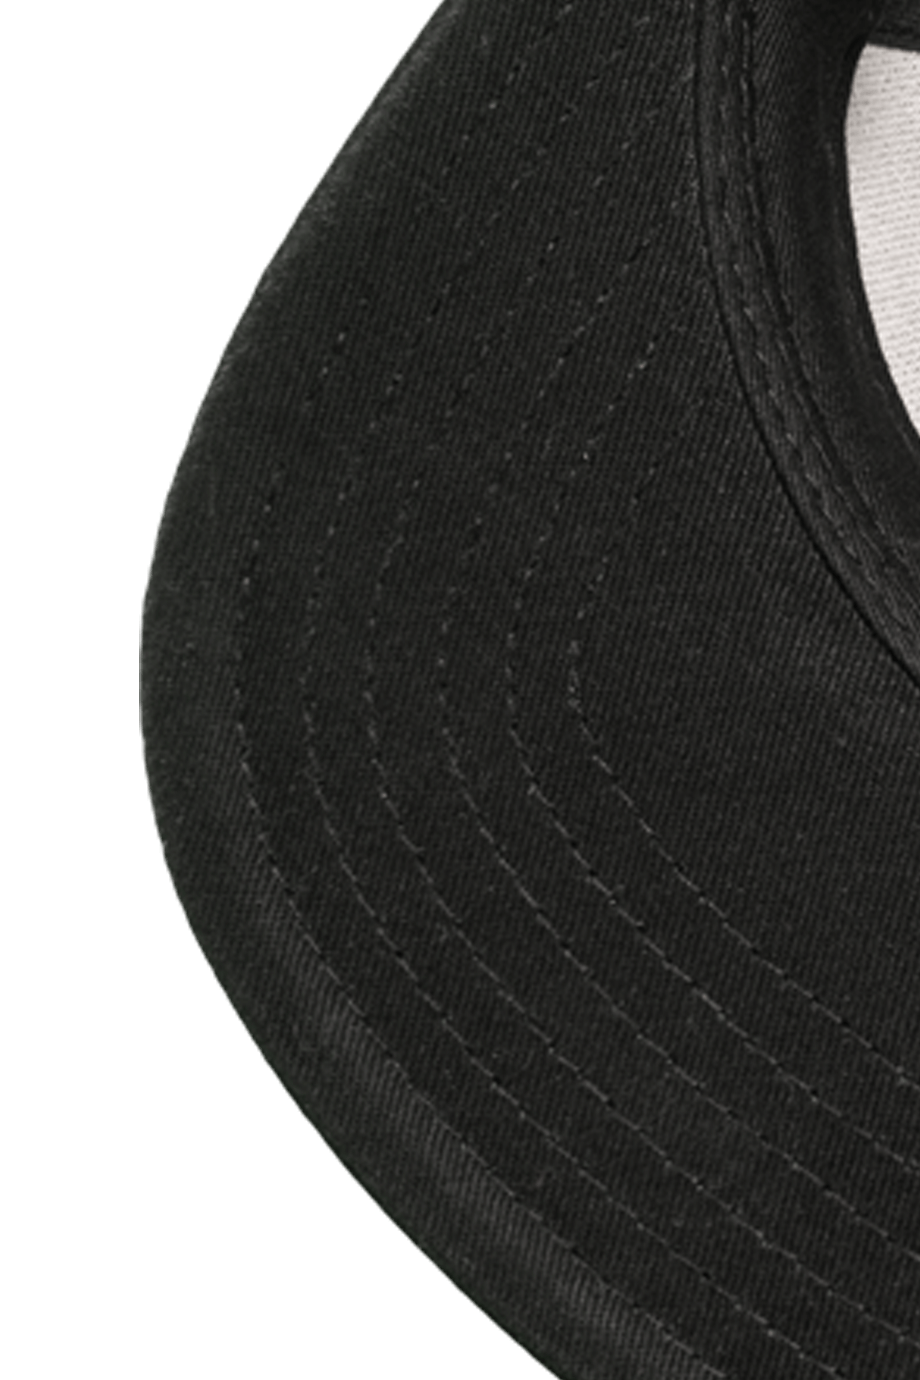 H4X COMPLEXITY SNAPBACK details 2